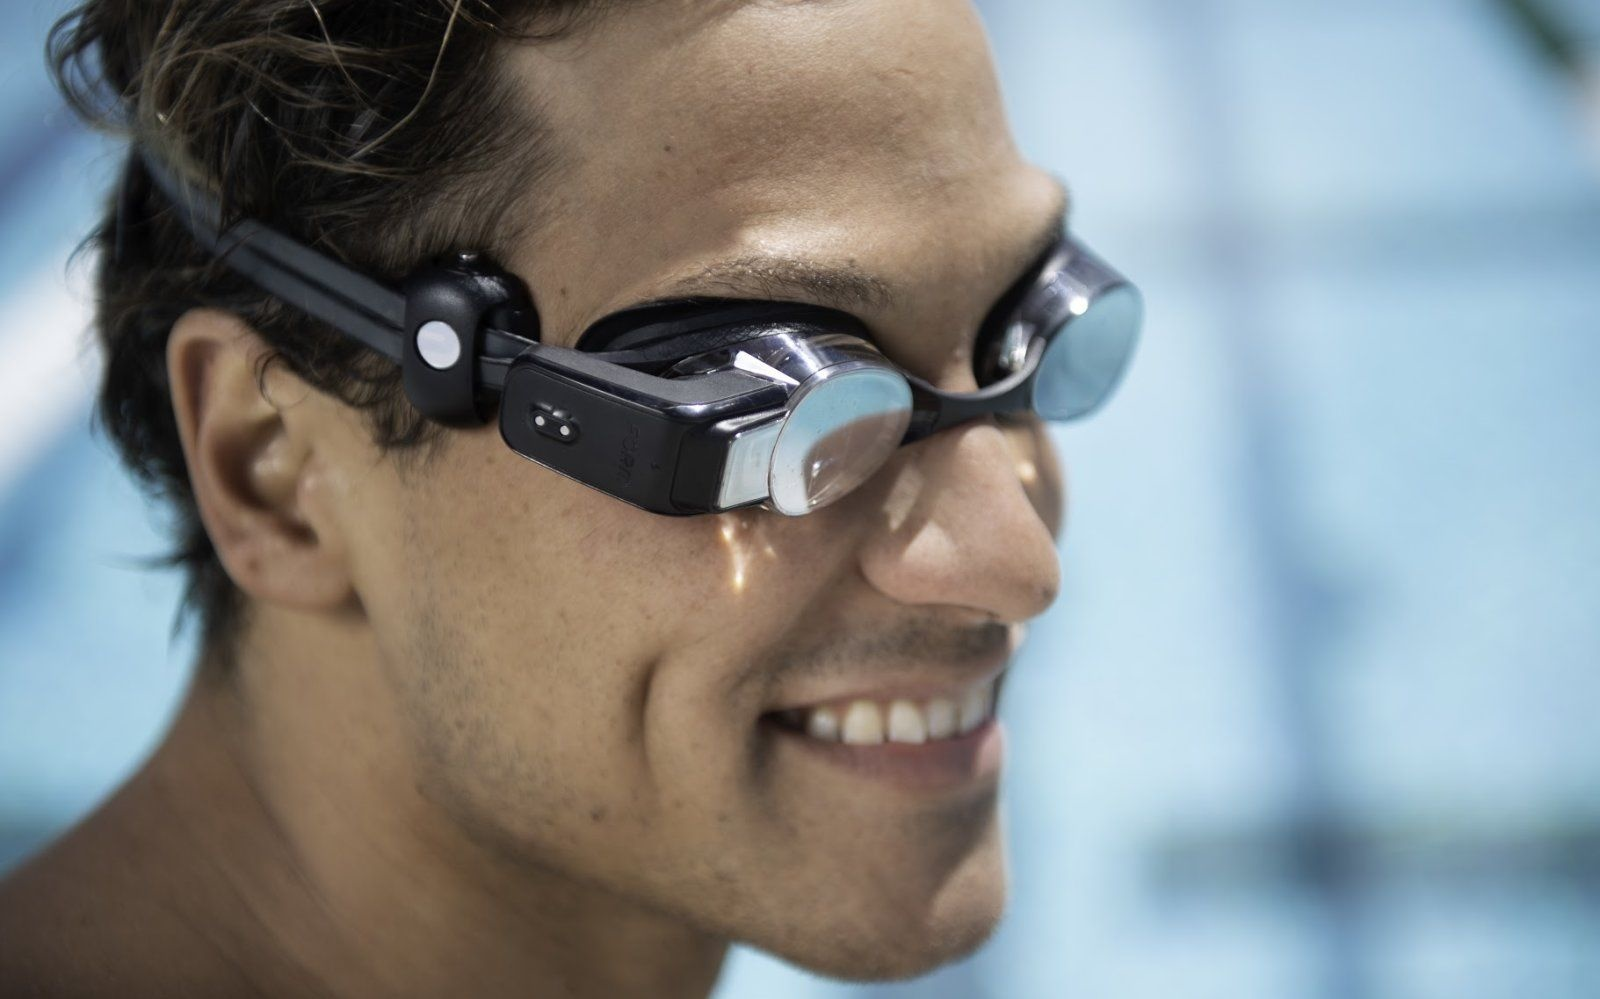 Form Swim Goggles, augmented reality glasses for swimming